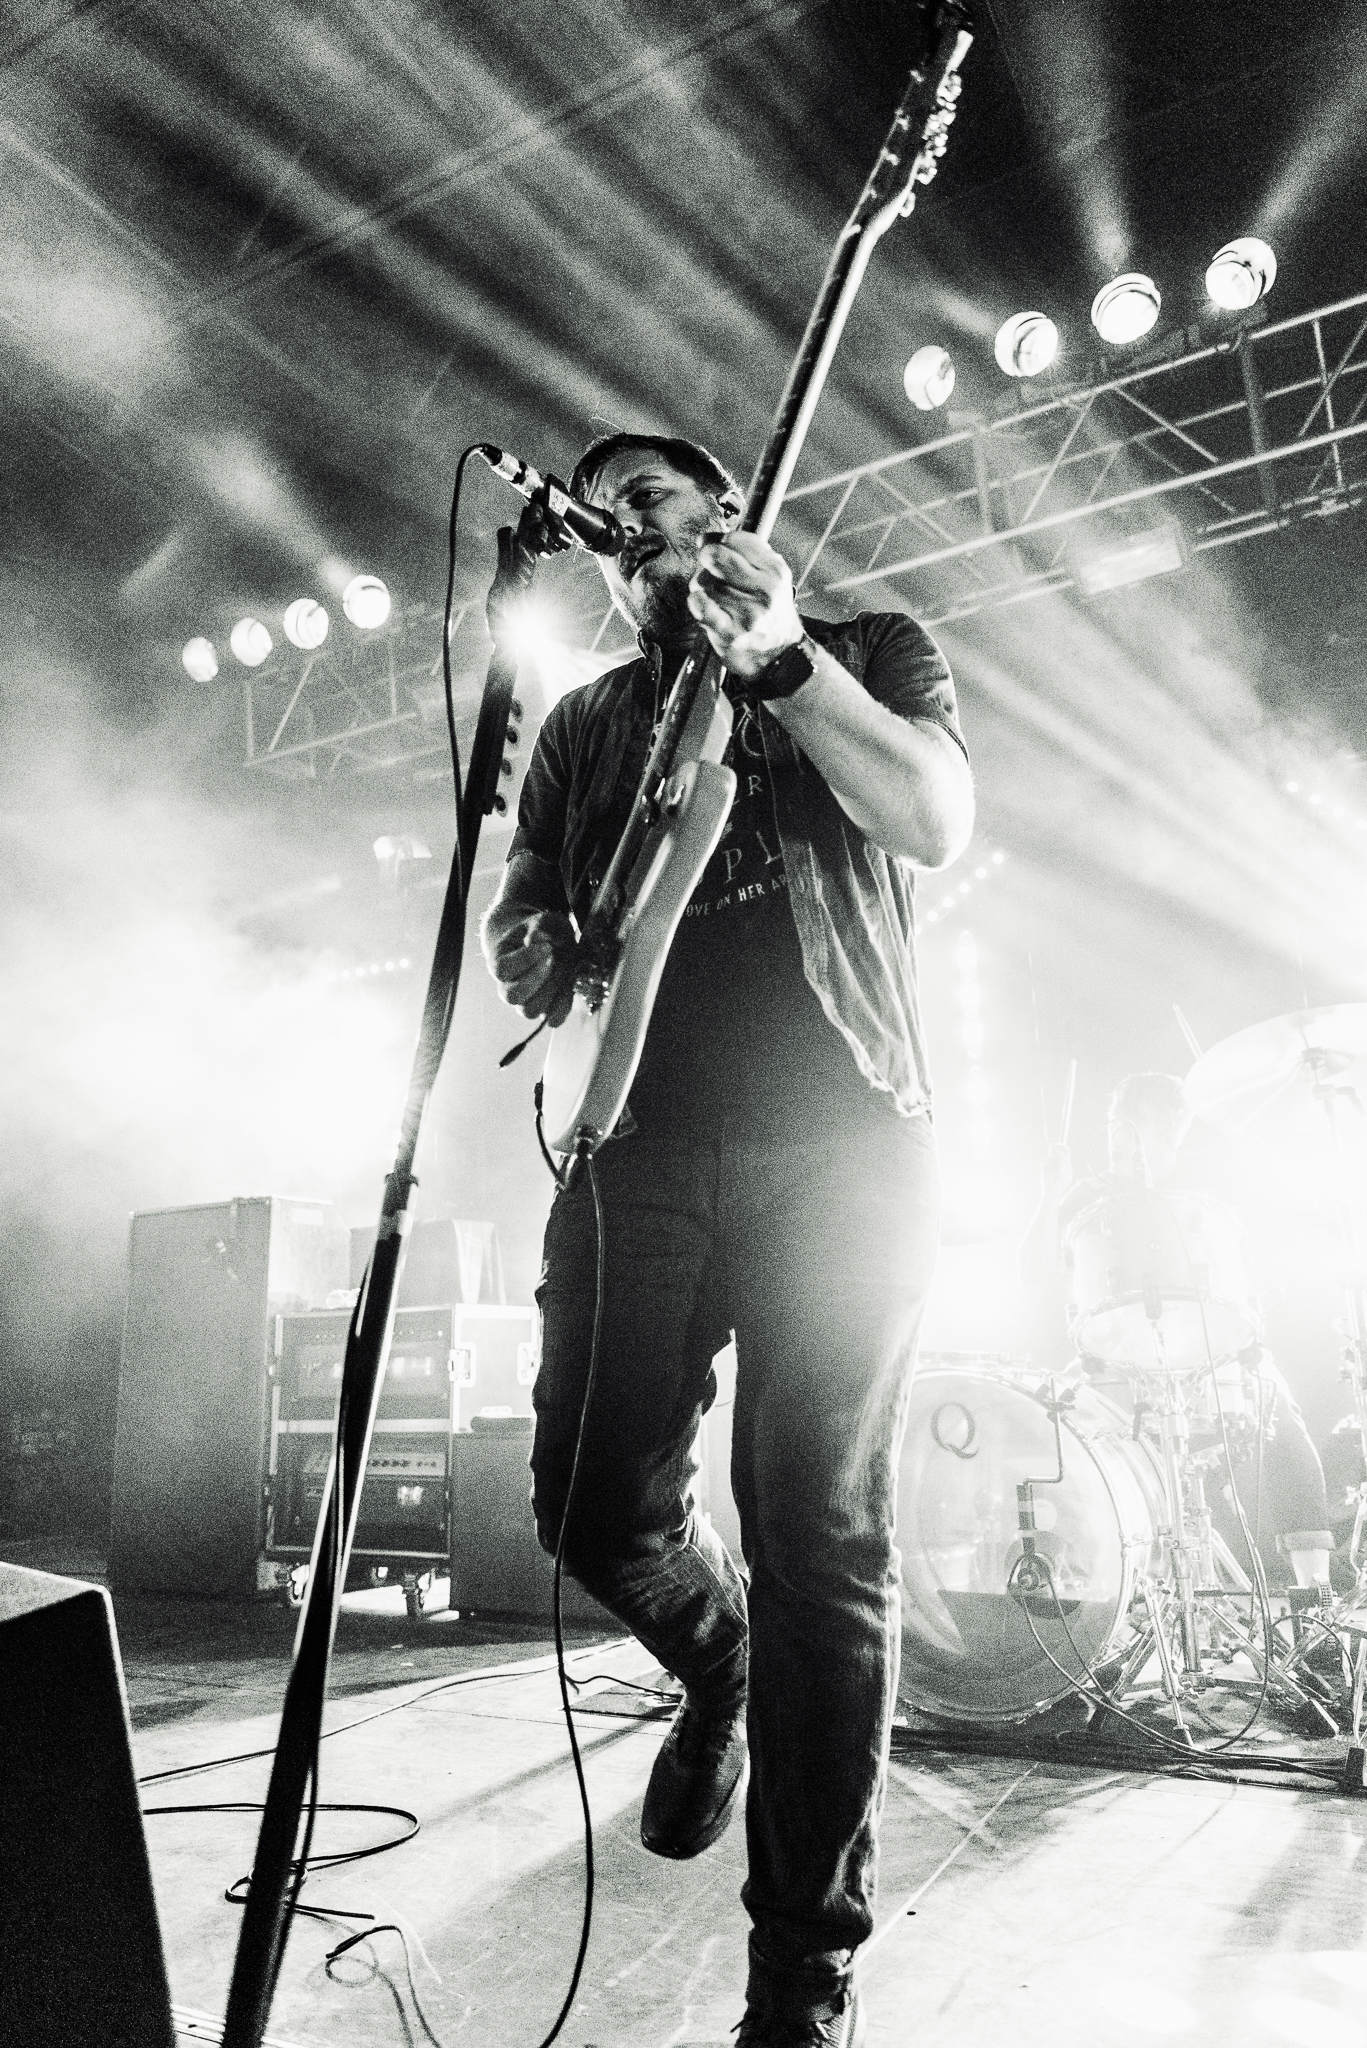 Thrice Starland Ballroom NJ Stars and Scars Photo